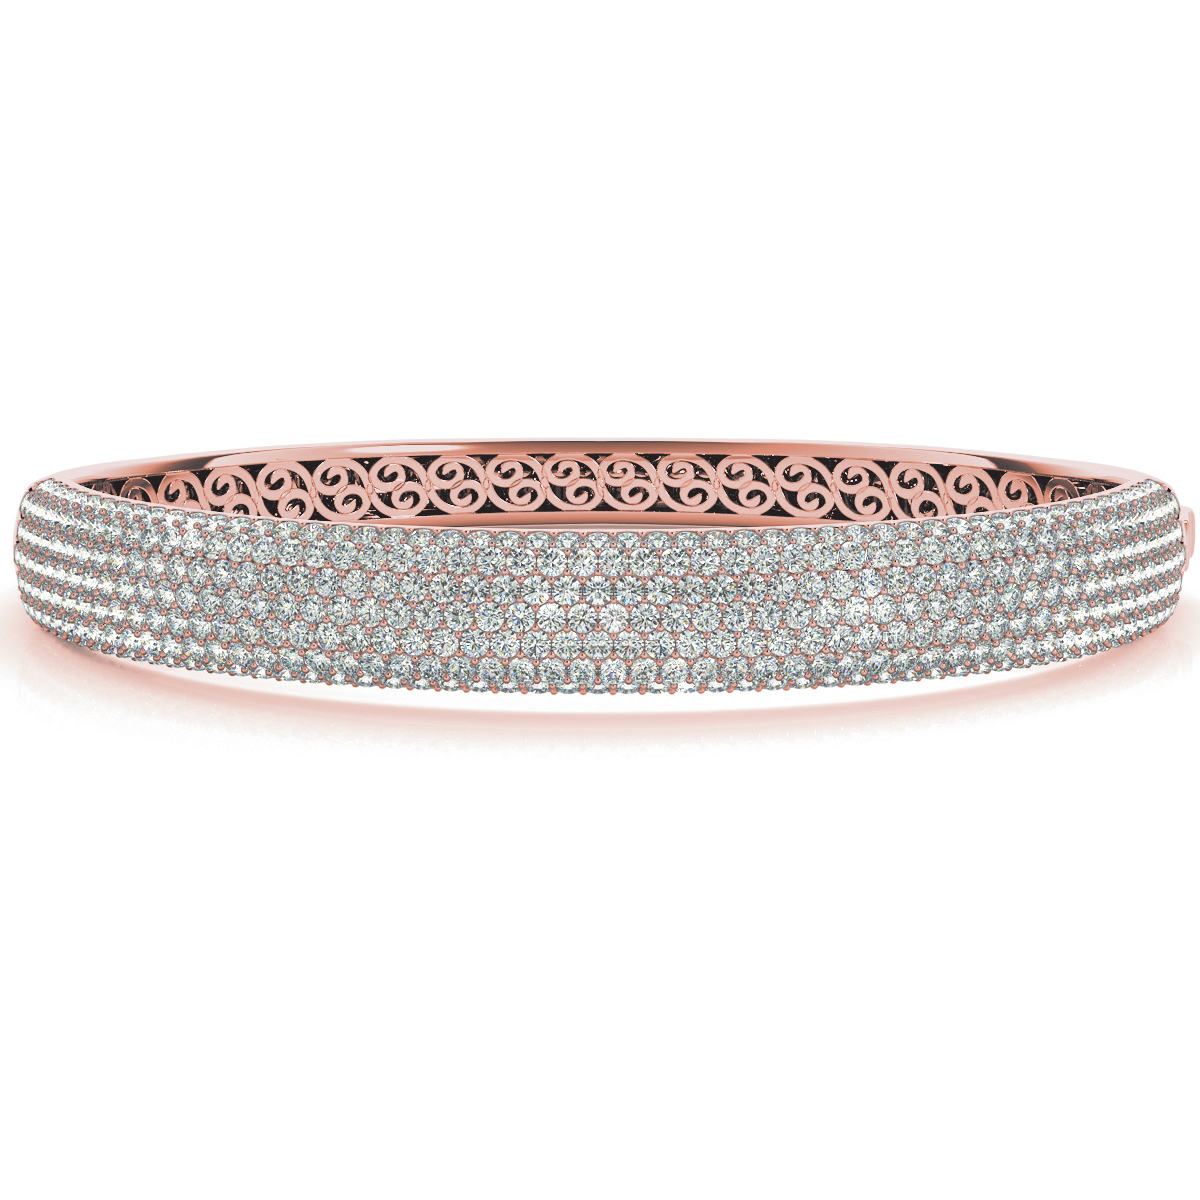 14k-rose-gold-multi-row-bangles-and-bracelet-70012